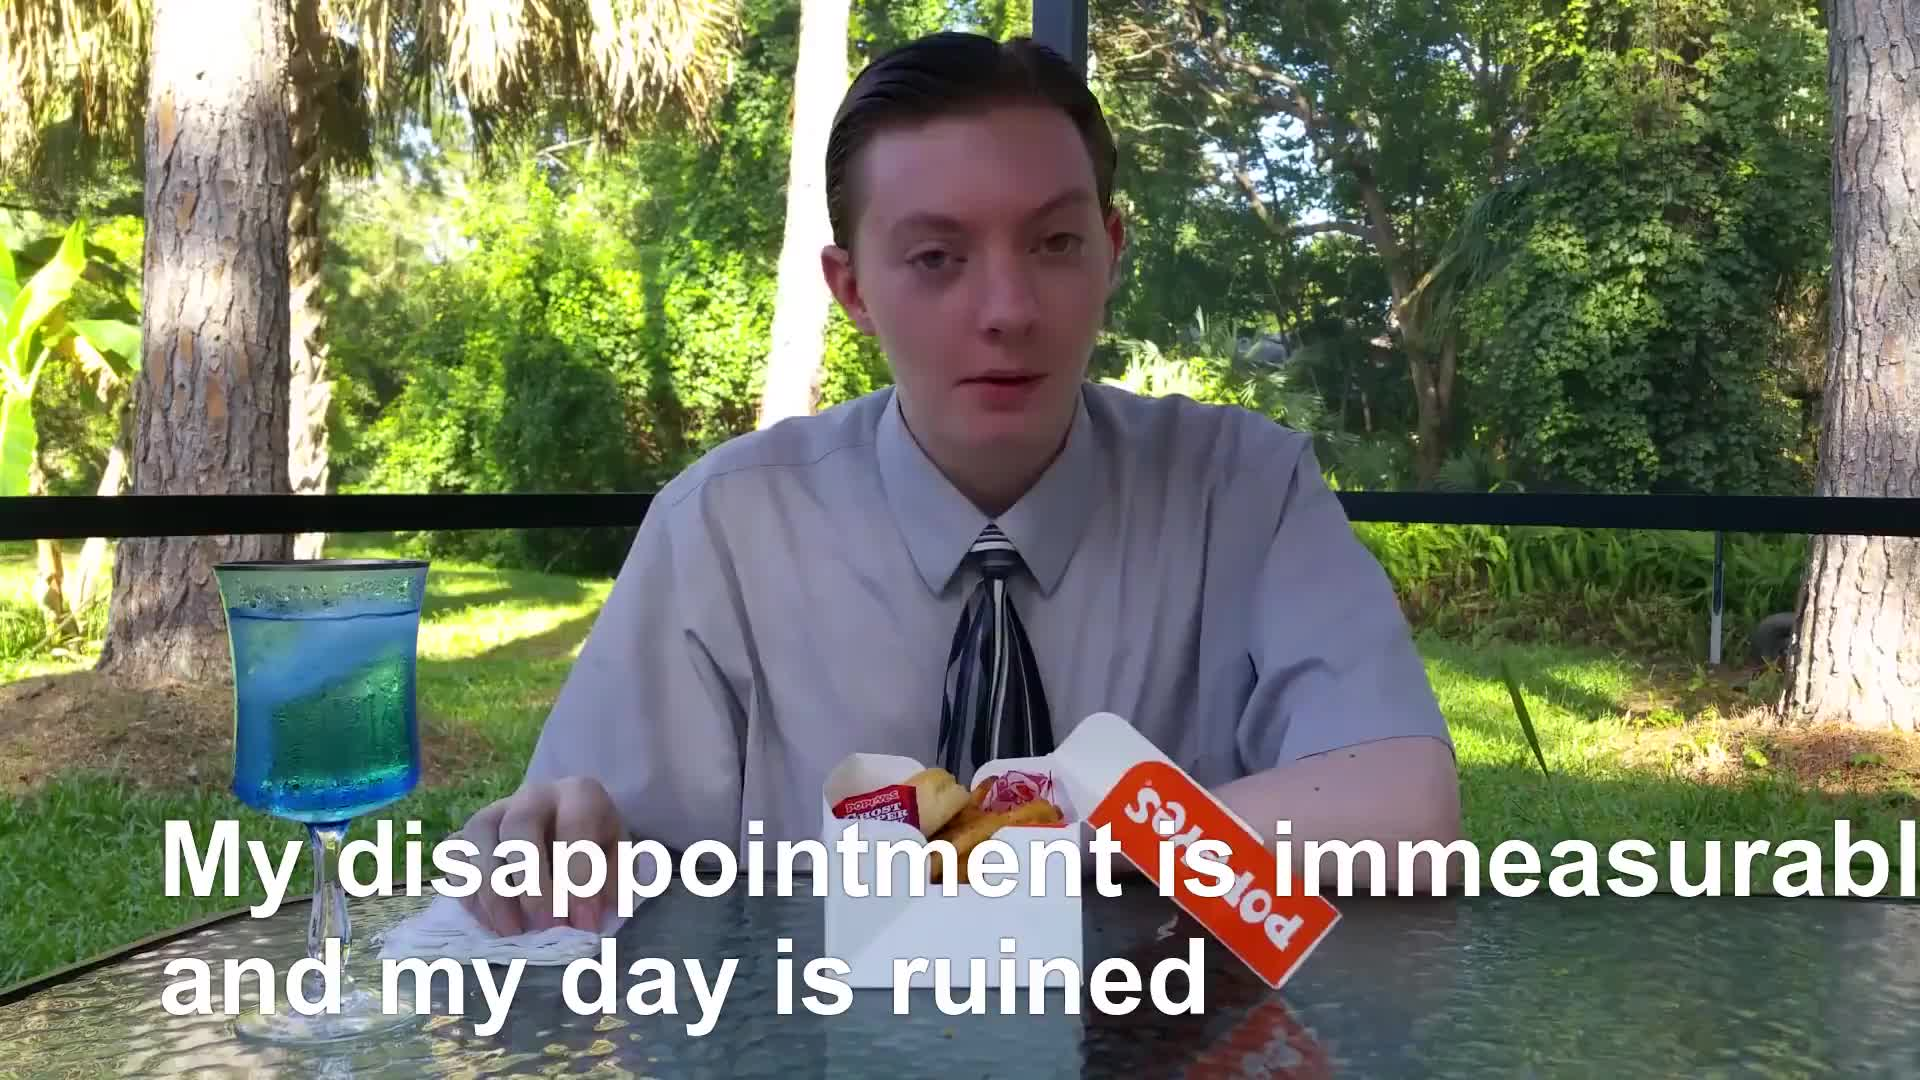 celebs, thereportoftheweek, My disappointment is immeasurable, and my day is ruined HD 1080P GIFs